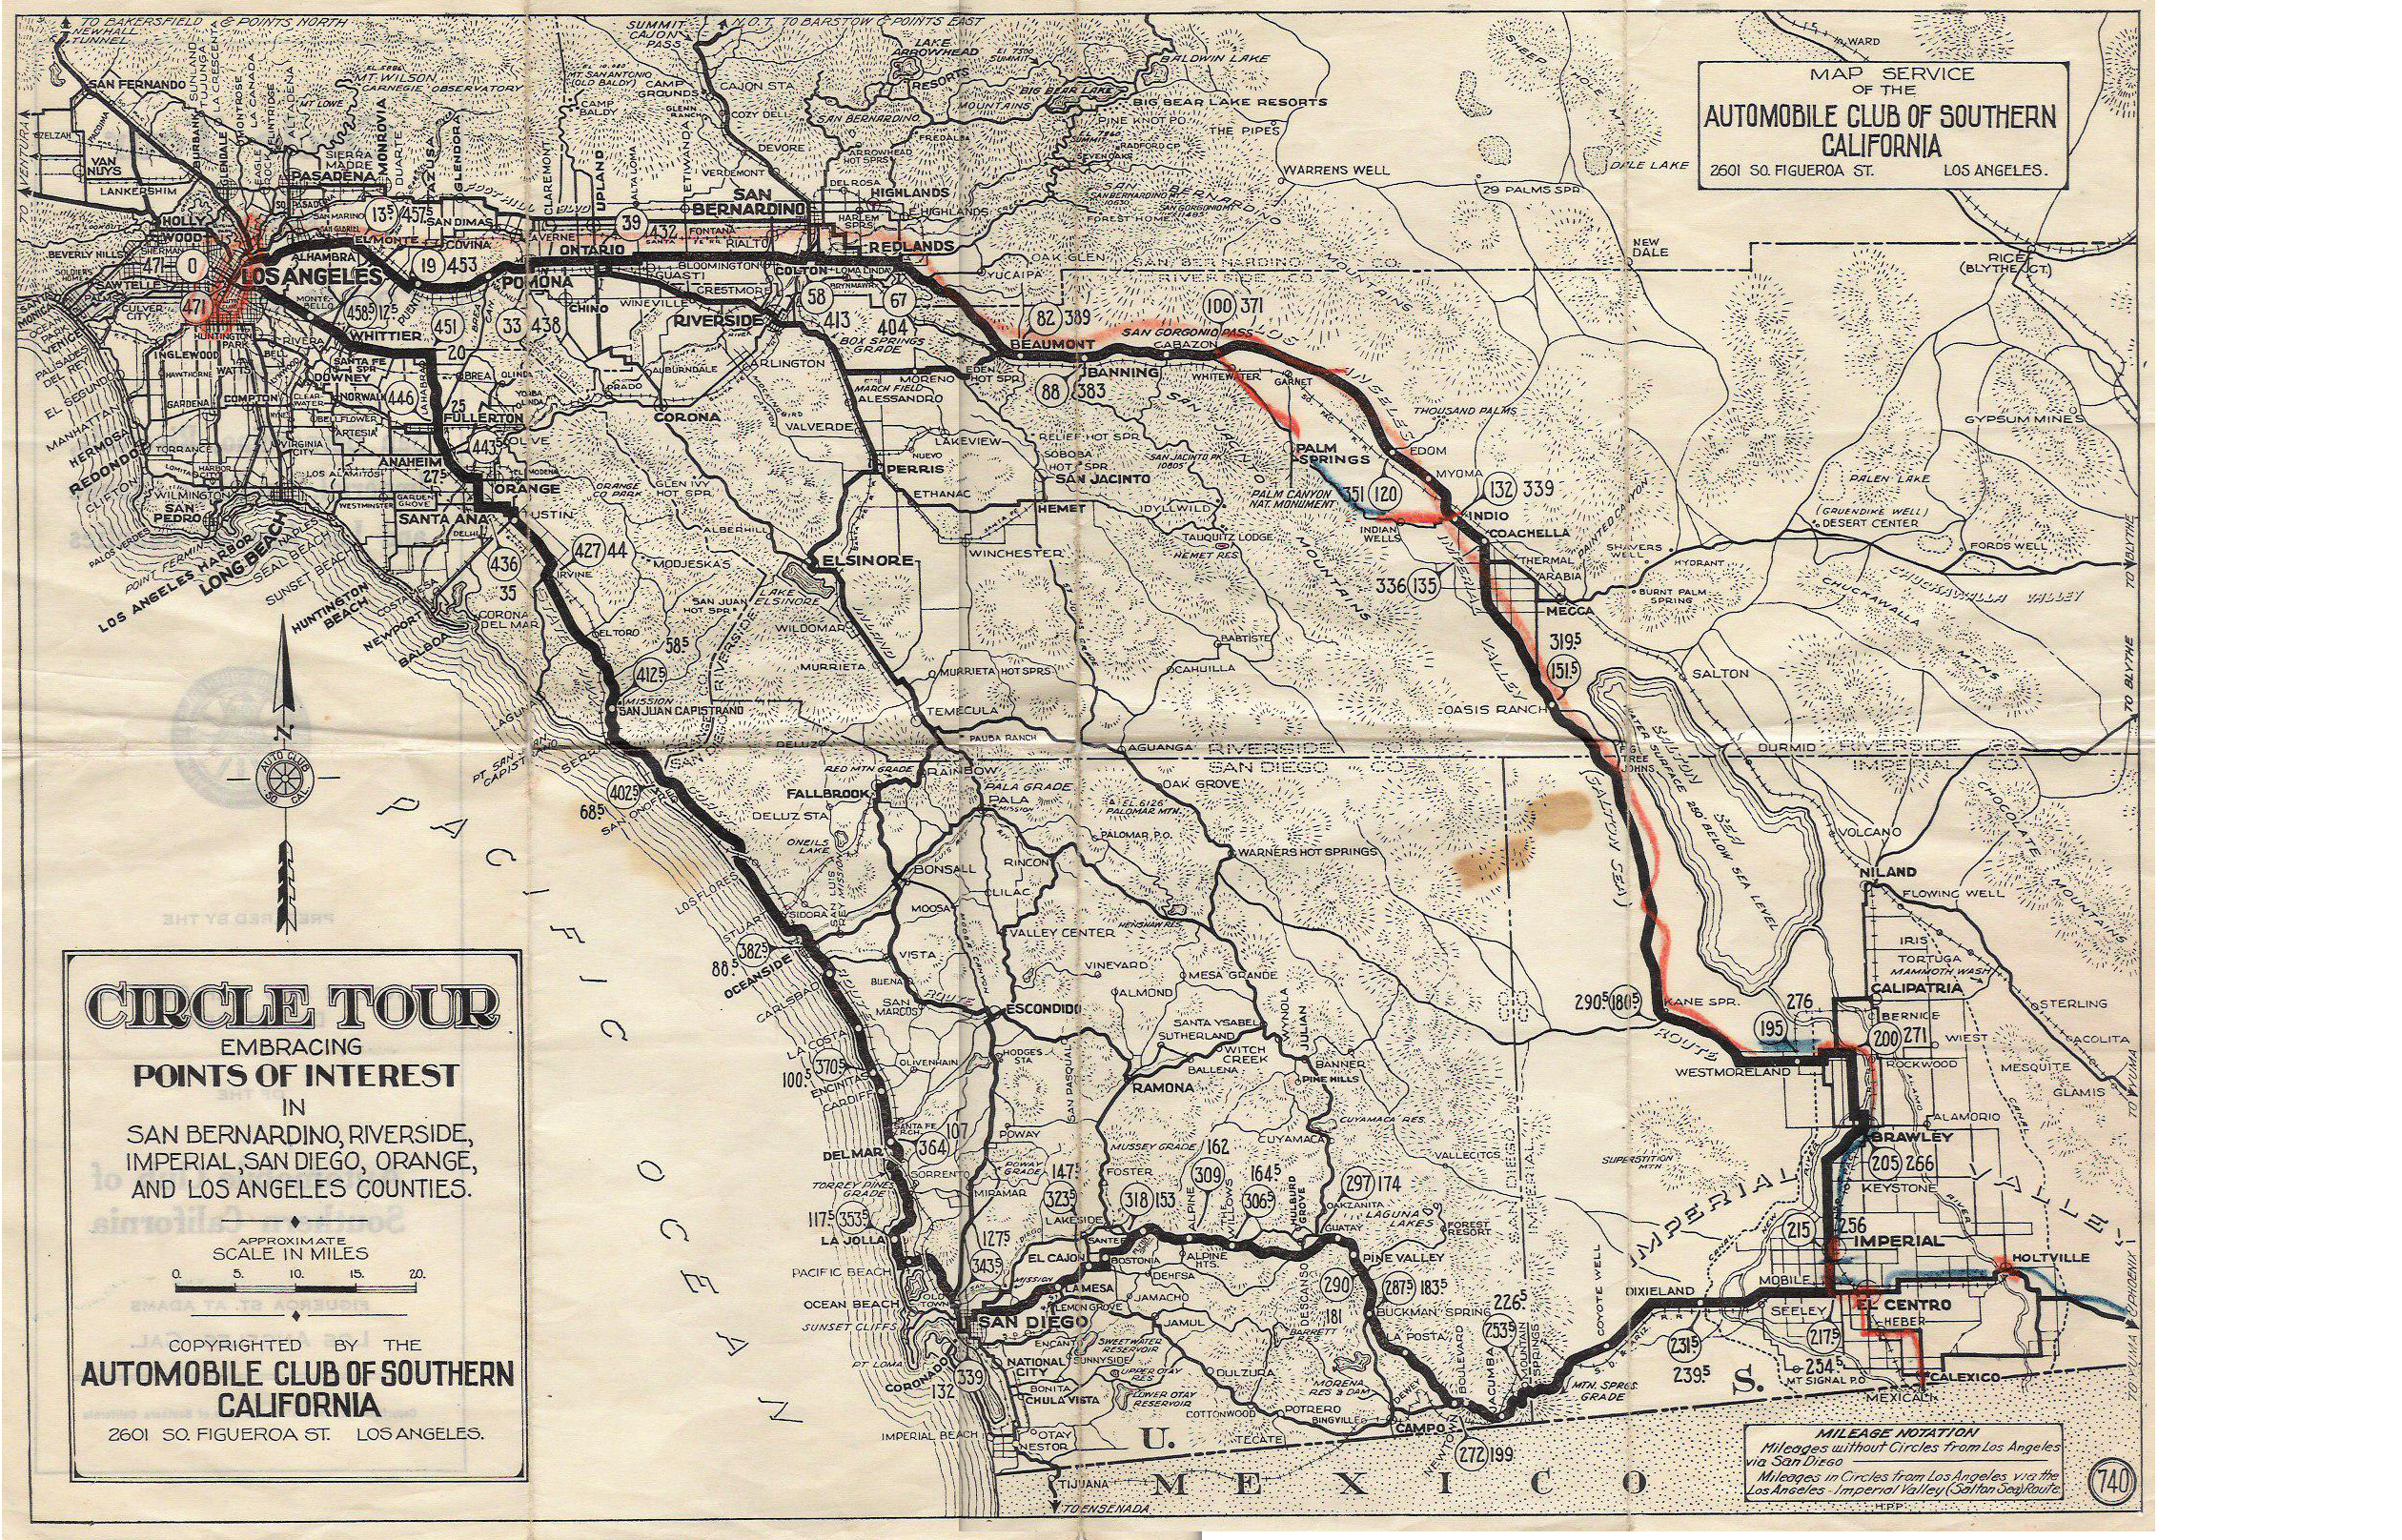 U.s. 395 - San Diego Original & Final Routes - Old Maps Of Southern California